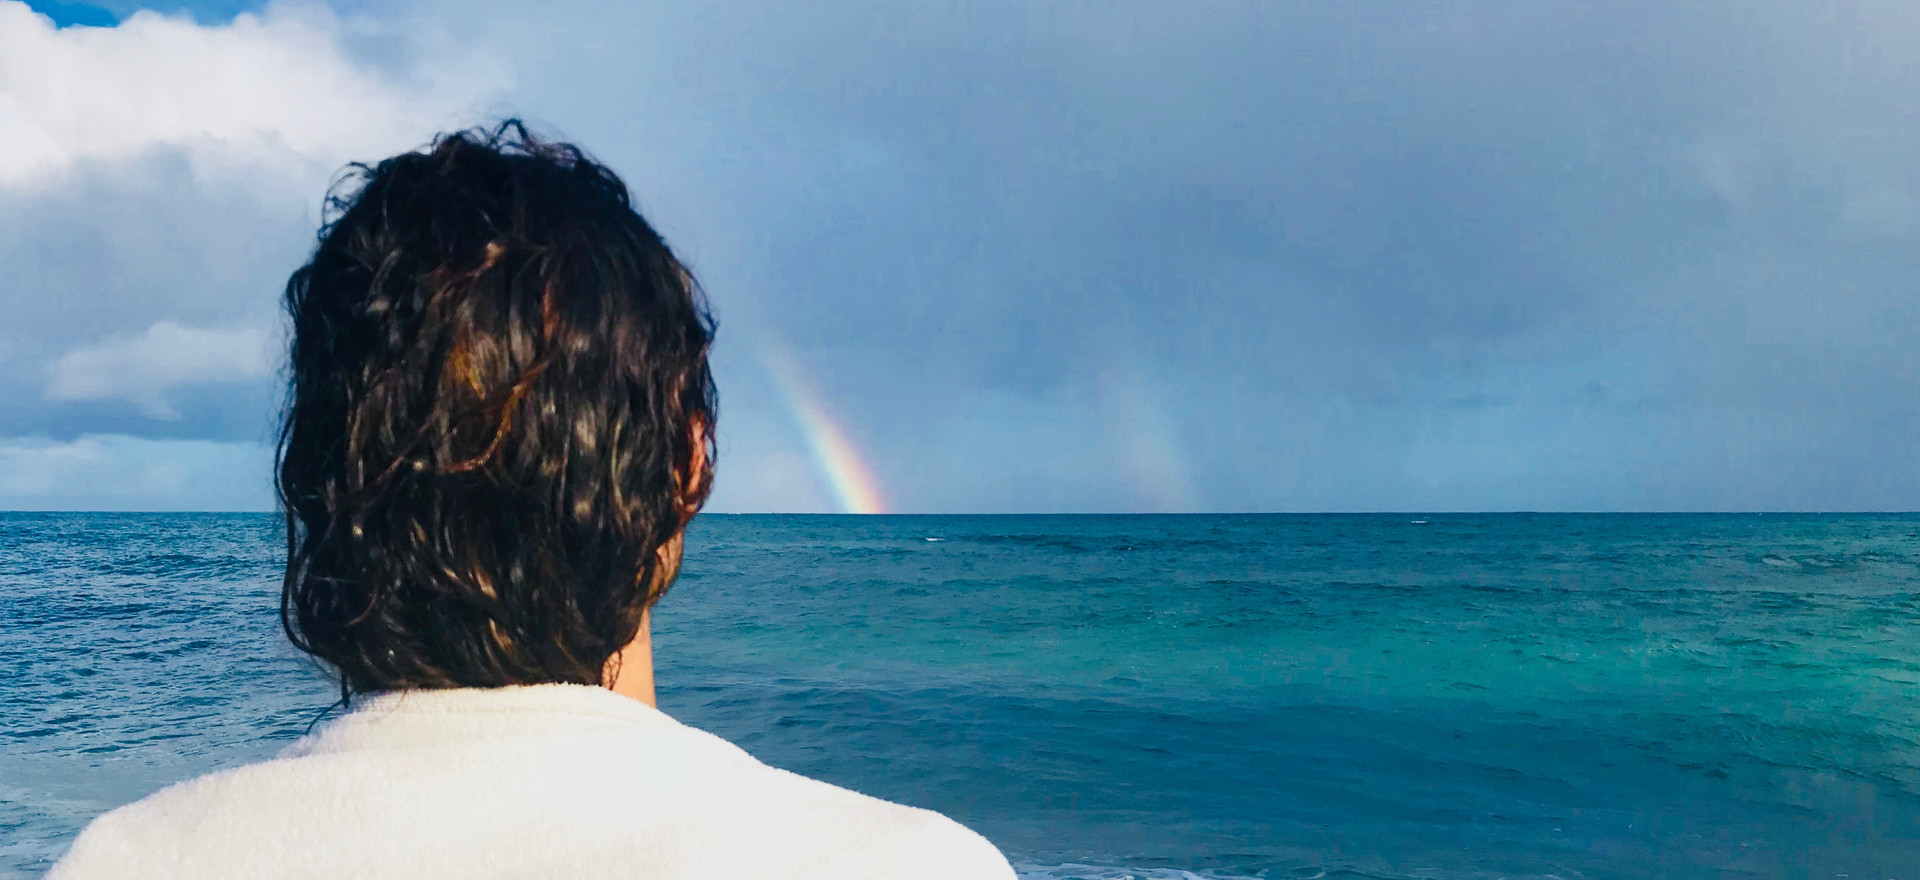 """""""I knew a miracle was taking place as I saw a double rainbow formed off the coast during my SeaHealings Shamanic Journey in nature it completely transformed my life. I am feeling so much lighter it was truly magical""""    Arnesto - North Shore Maui"""